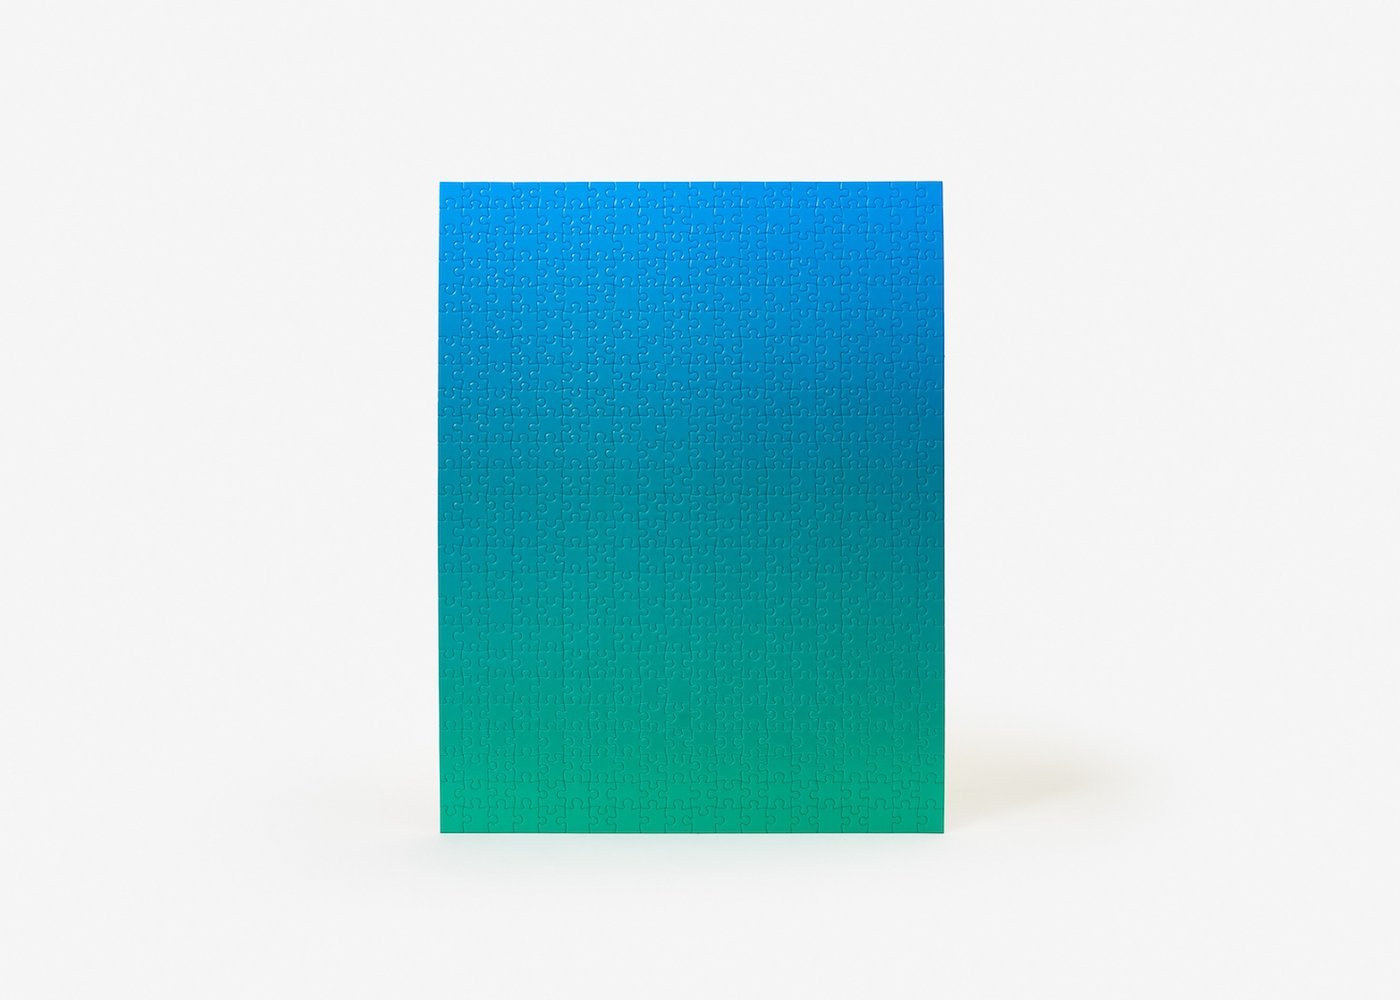 Puzzle gradient blue/green